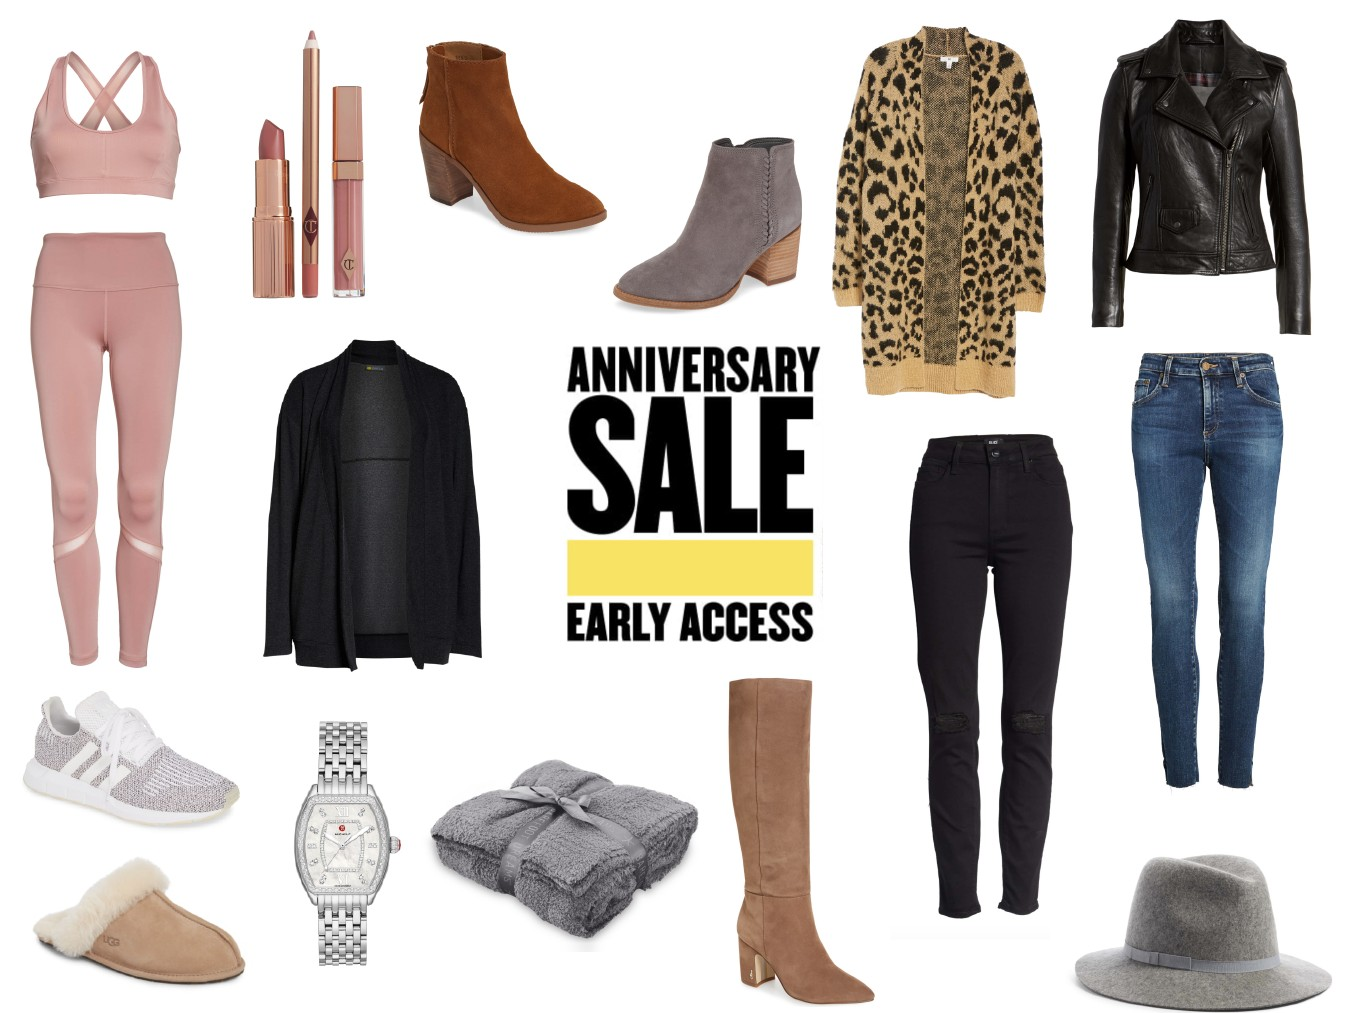 2019 Nordstrom Anniversary Sale Sneak Peeks and Shopping Guide